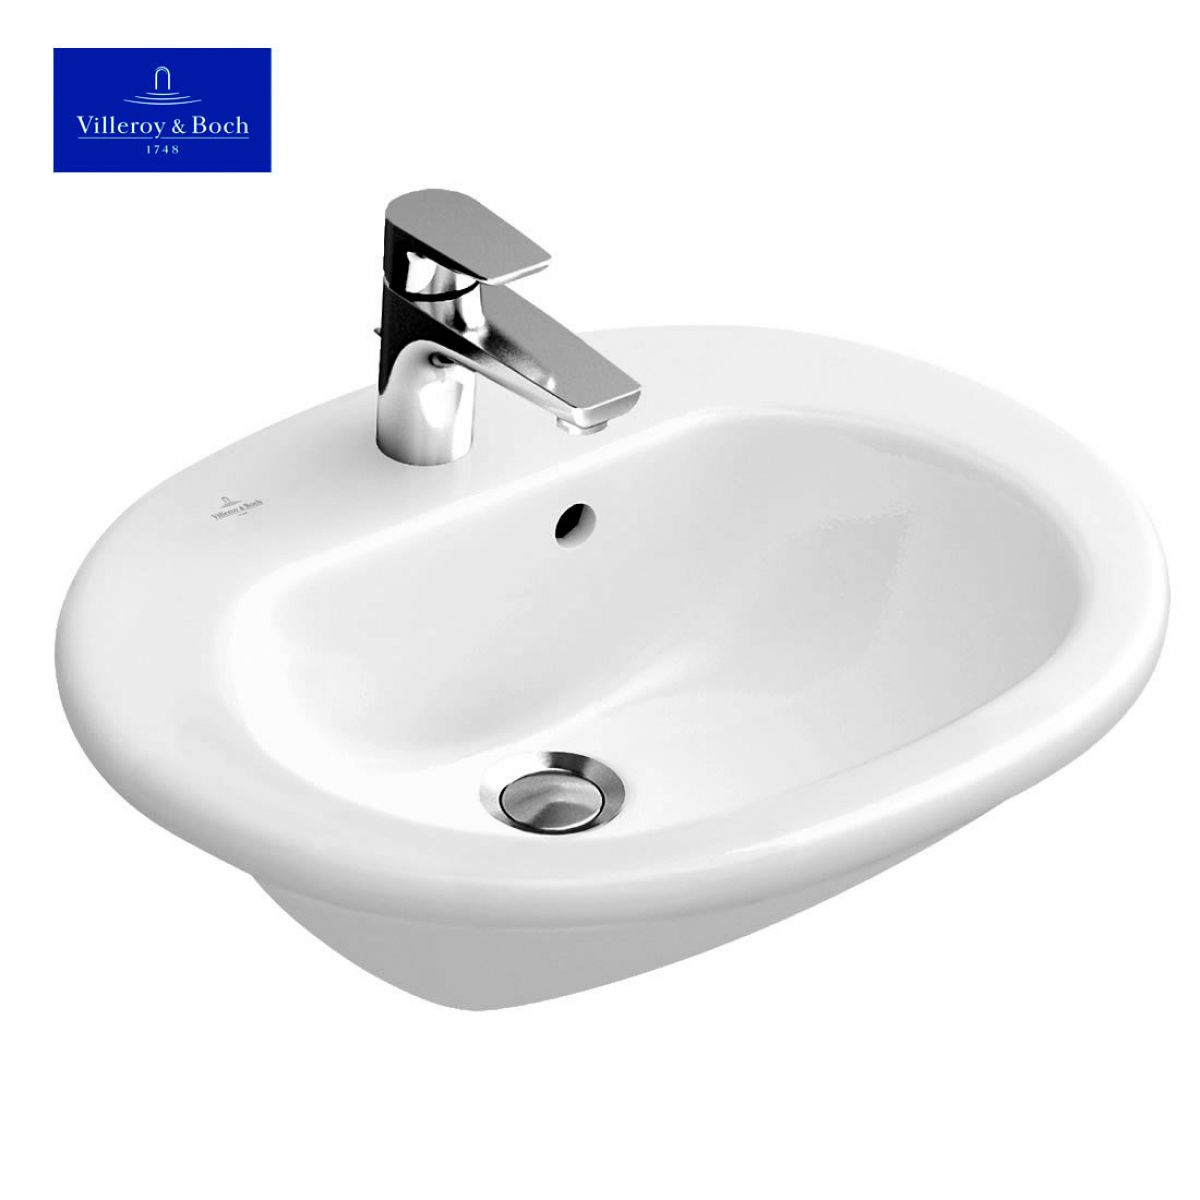 villeroy boch o novo semi recessed washbasin uk bathrooms. Black Bedroom Furniture Sets. Home Design Ideas